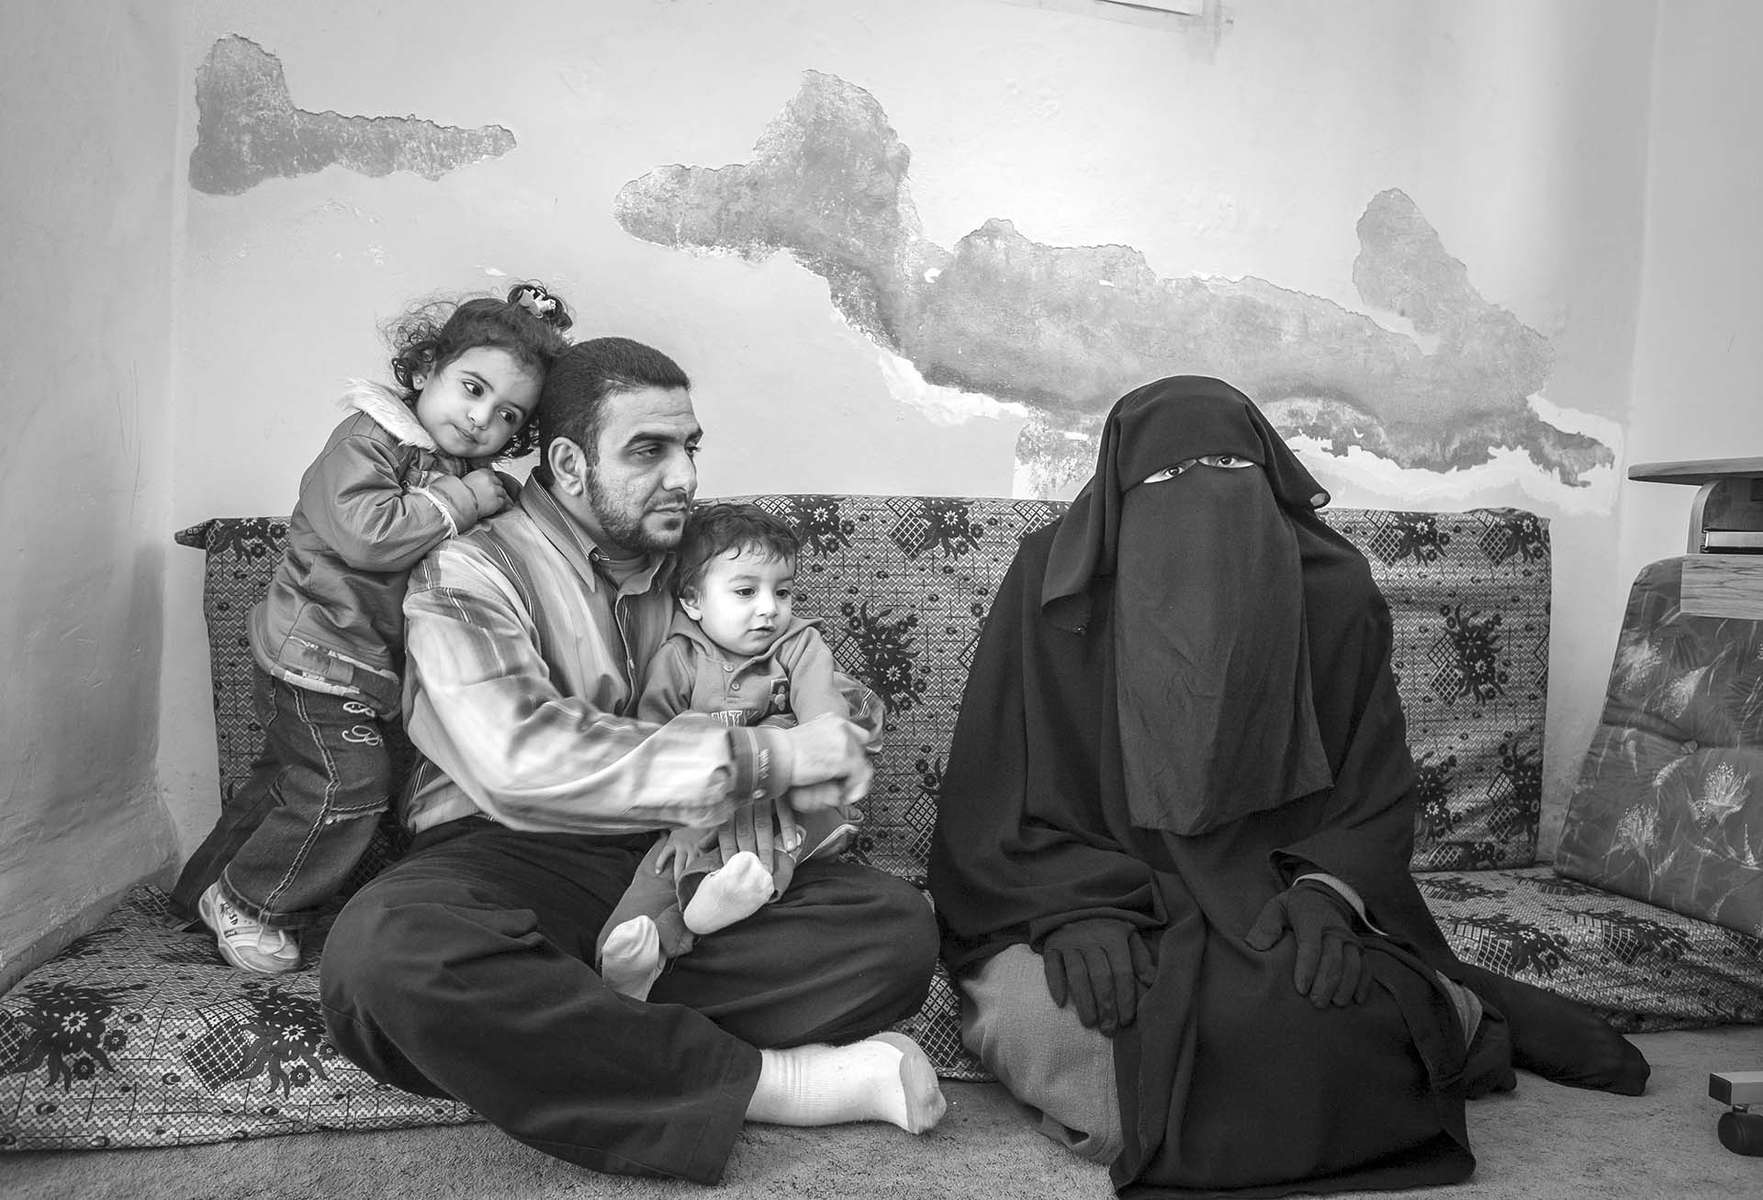 Ibrahim, his wife Adra, their two-year-old daughter Raim, and their one-year-old Salim relax at their bare and dilapidated apartment in the poor section of Amman, Jordan, November 11, 2007. Ibrahim and Adra were still newlyweds when the bloody sectarian violence in Iraq began.  Ibrahim became a Sunni when he married Adra, common practice at the time. But he did not know that the conversion had become a death sentence. When he discovered that his family was on a hit list, he made a fast and painful decision to leave.  The couple quickly said good-bye to their families and headed to Jordan. Since then, Adra's father and younger brother have been murdered.  {quote}I hate these words Shia and Sunni. They mean nothing to me other than the reason why innocent people are killed,{quote} Adra says.